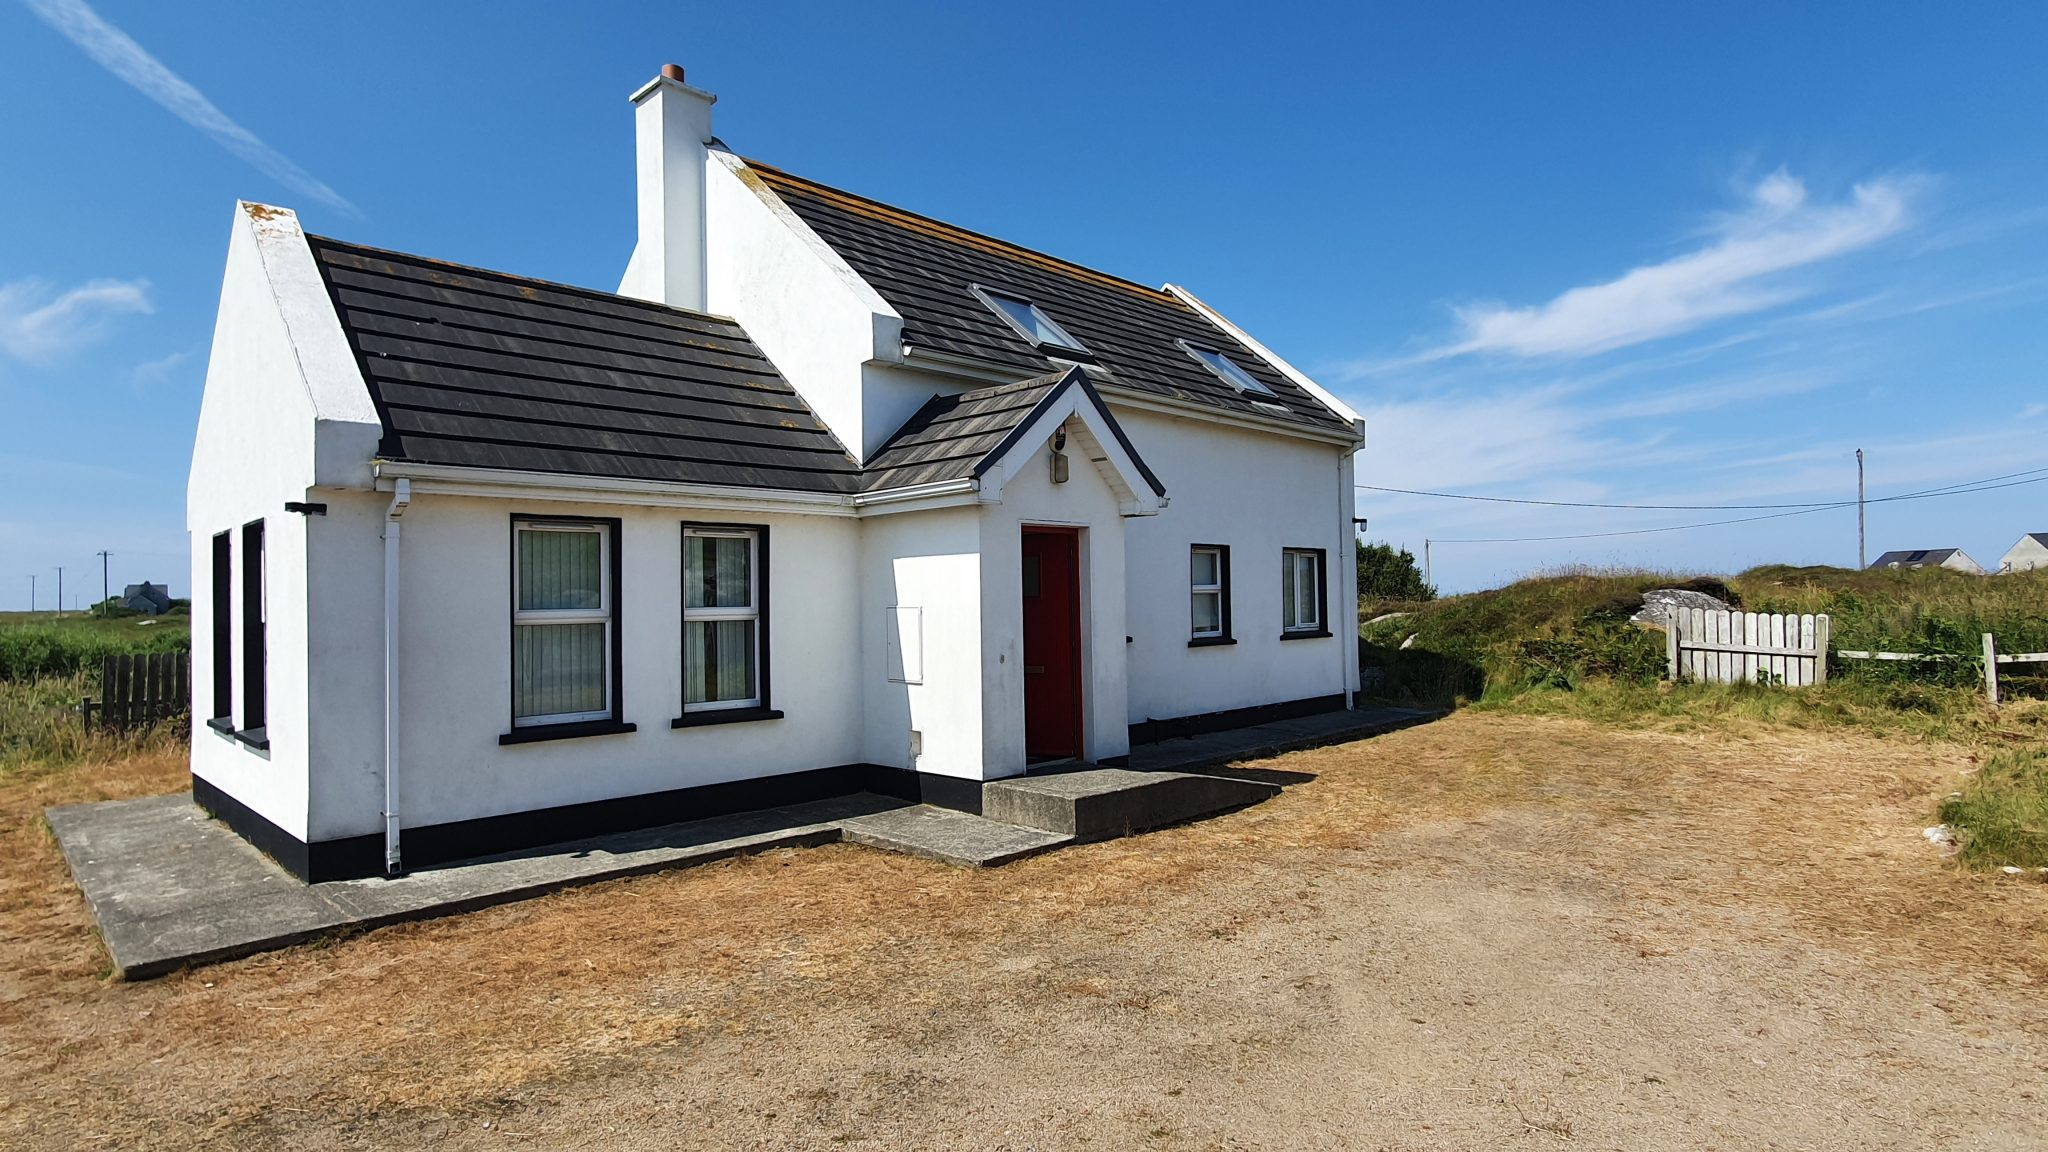 3 Bedroom House for Sale in Lower Glassagh.